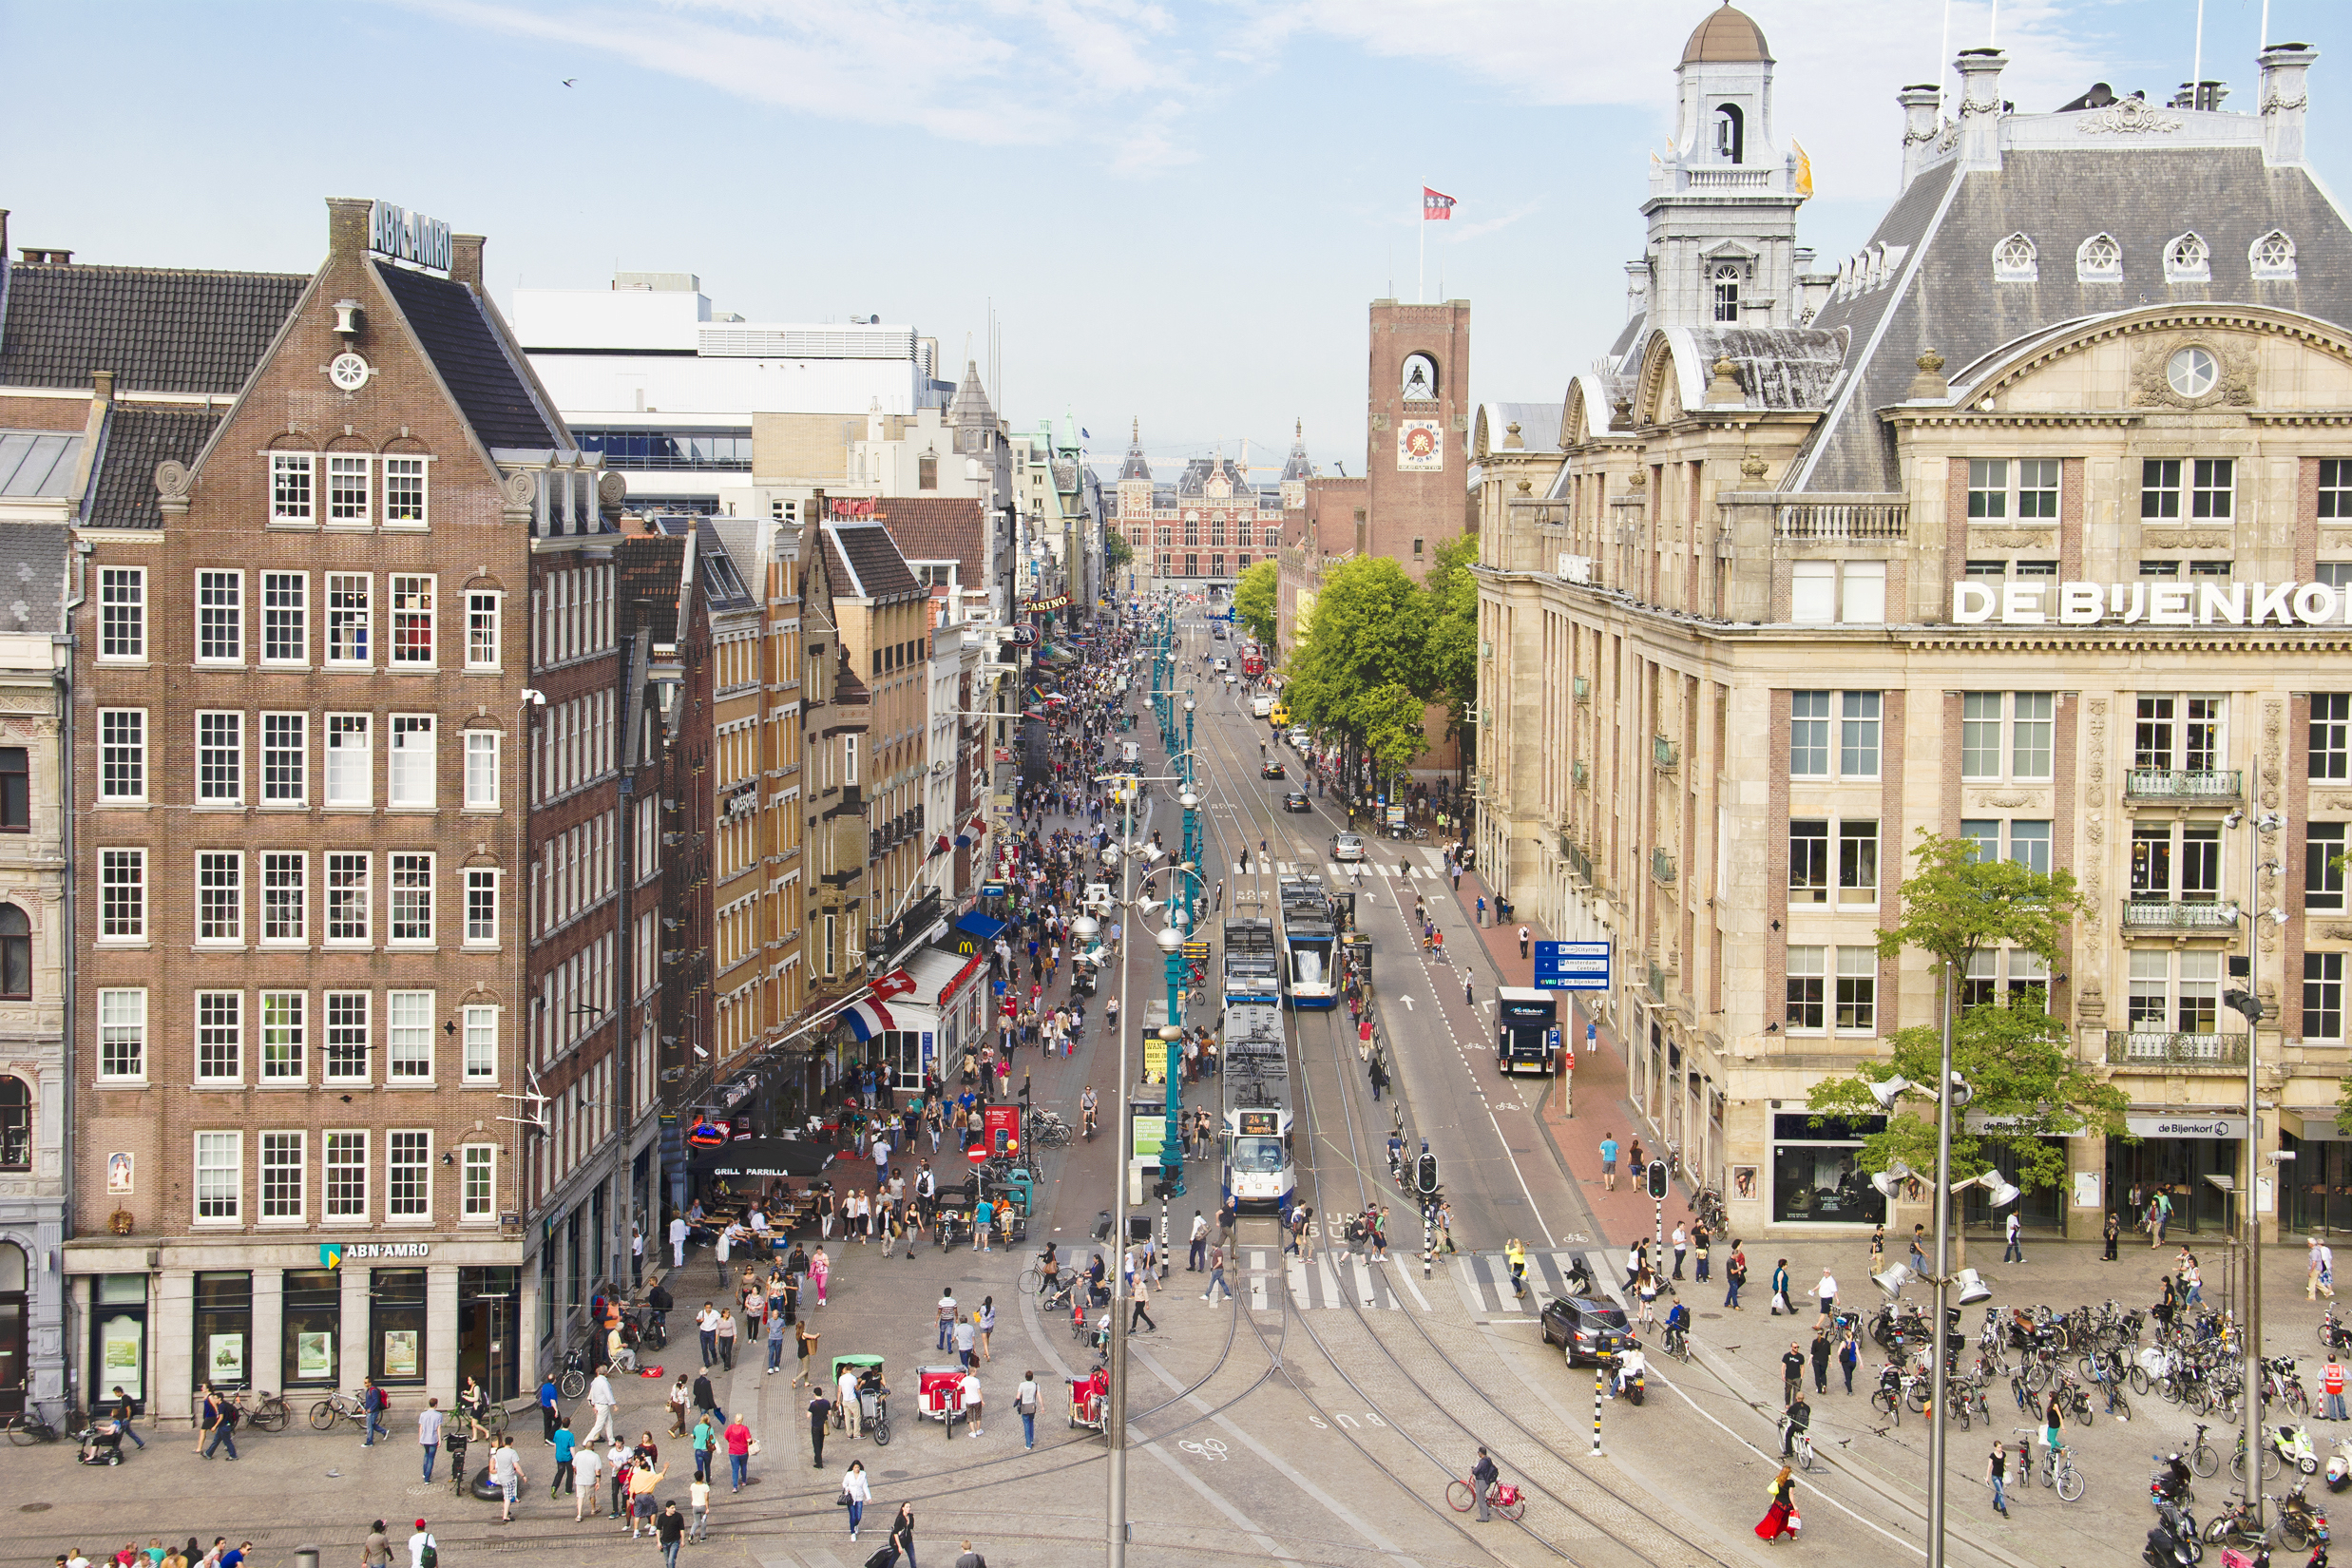 People walking on the Dam square in Amsterdam